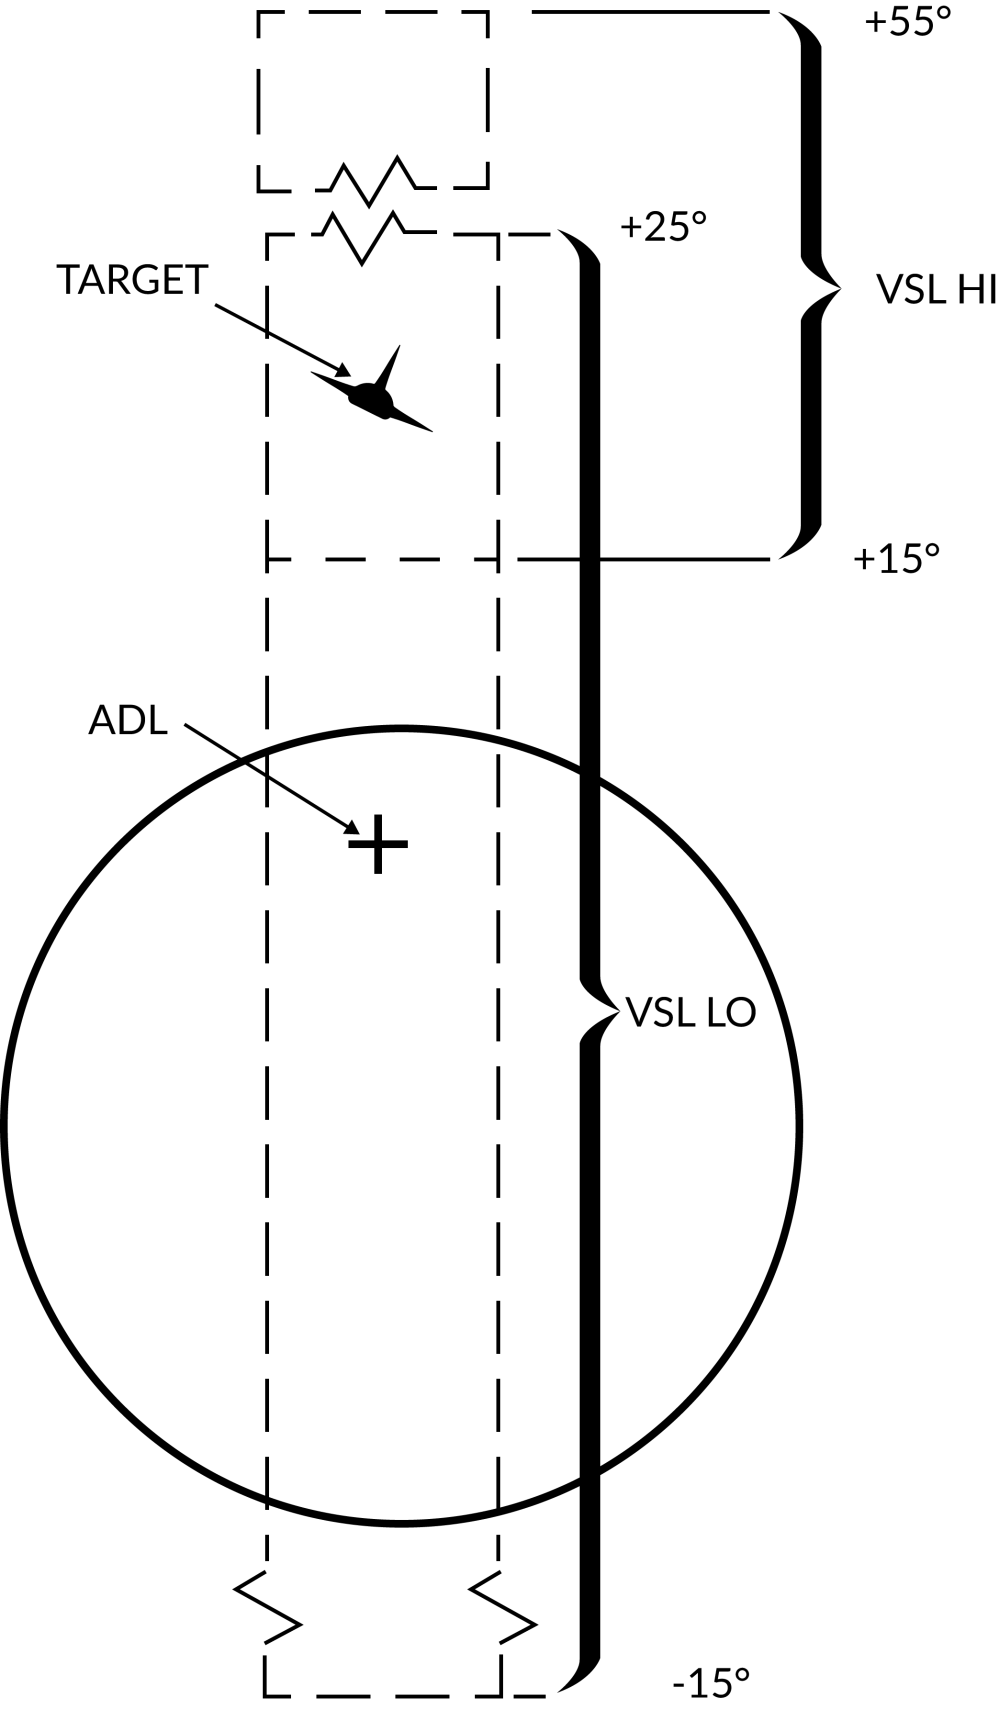 medium resolution of the vsl mode is enabled by the pilot or the rio and is used to acquire a target at own aircrafts current heading from an elevation of 15 to 55